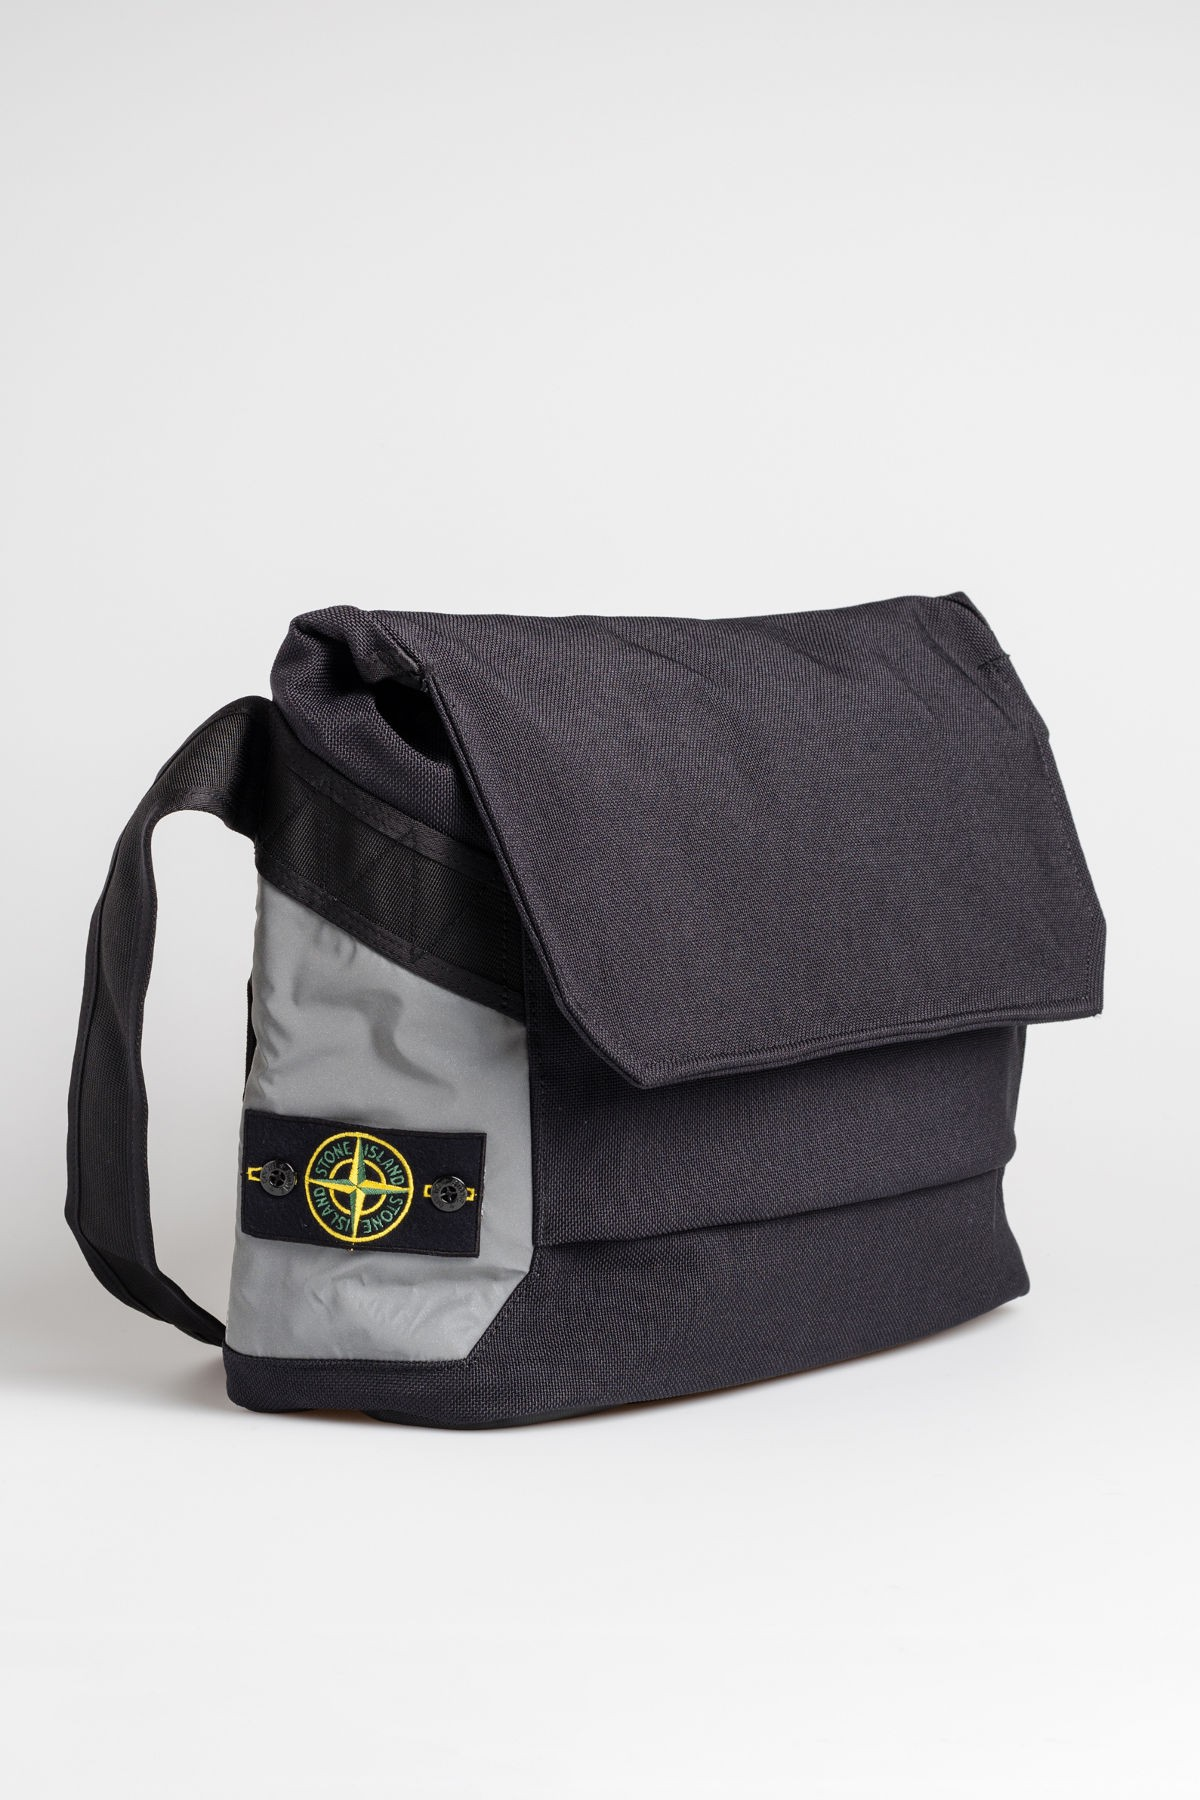 3af9c47b16 Bag for man STONE ISLAND F W 17-18 - Rione Fontana